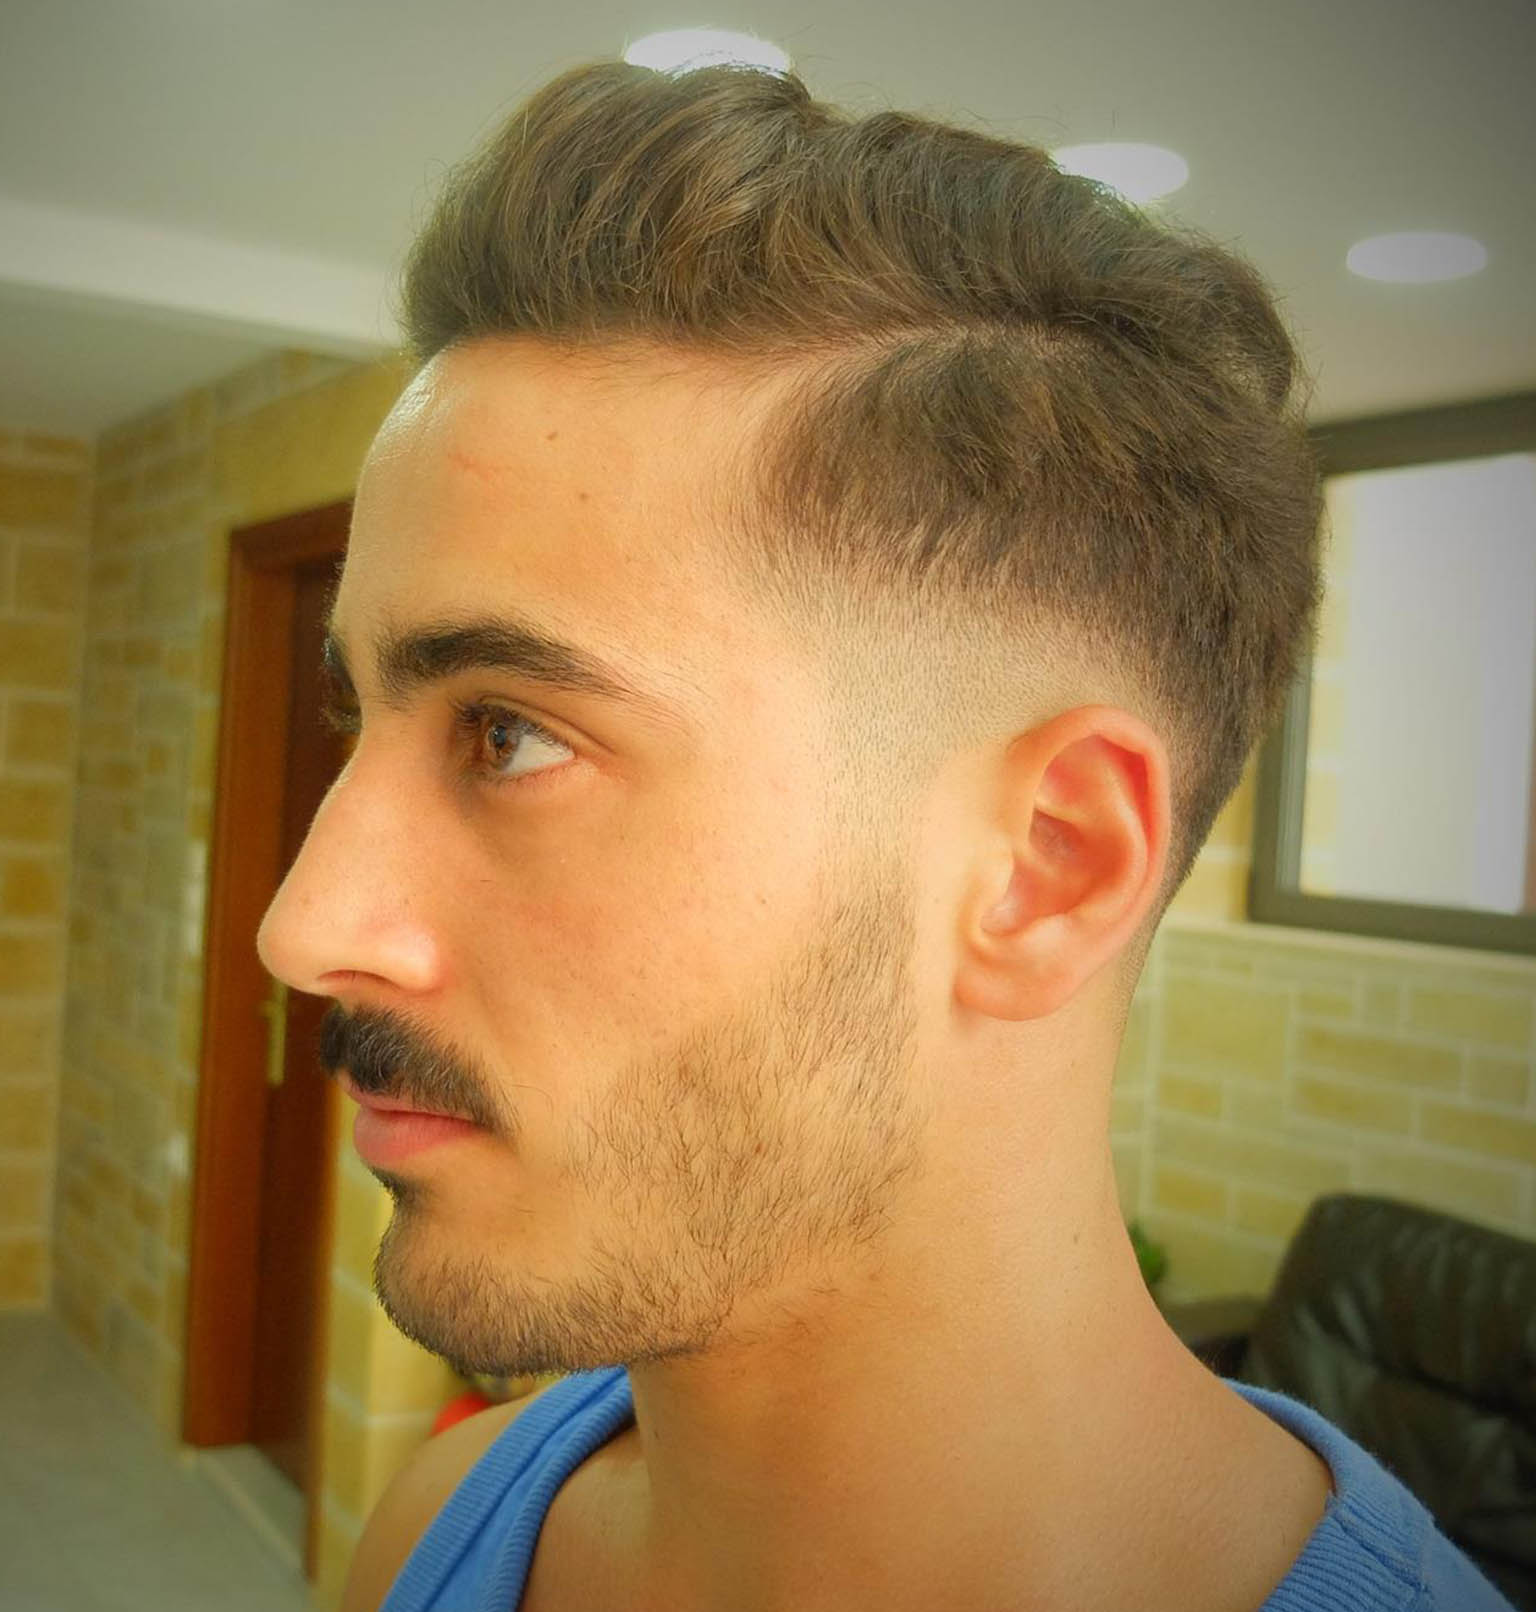 Haircuts | Koura barbershop in kissamos